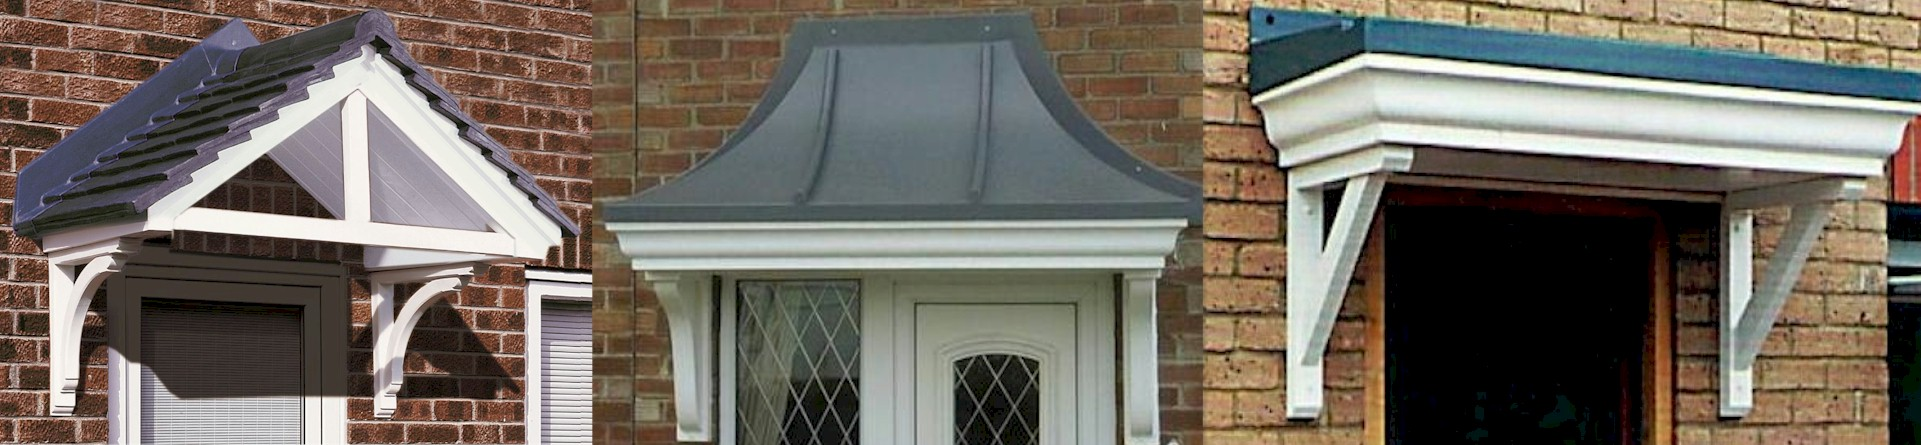 Door Canopies : pvc door canopy - memphite.com